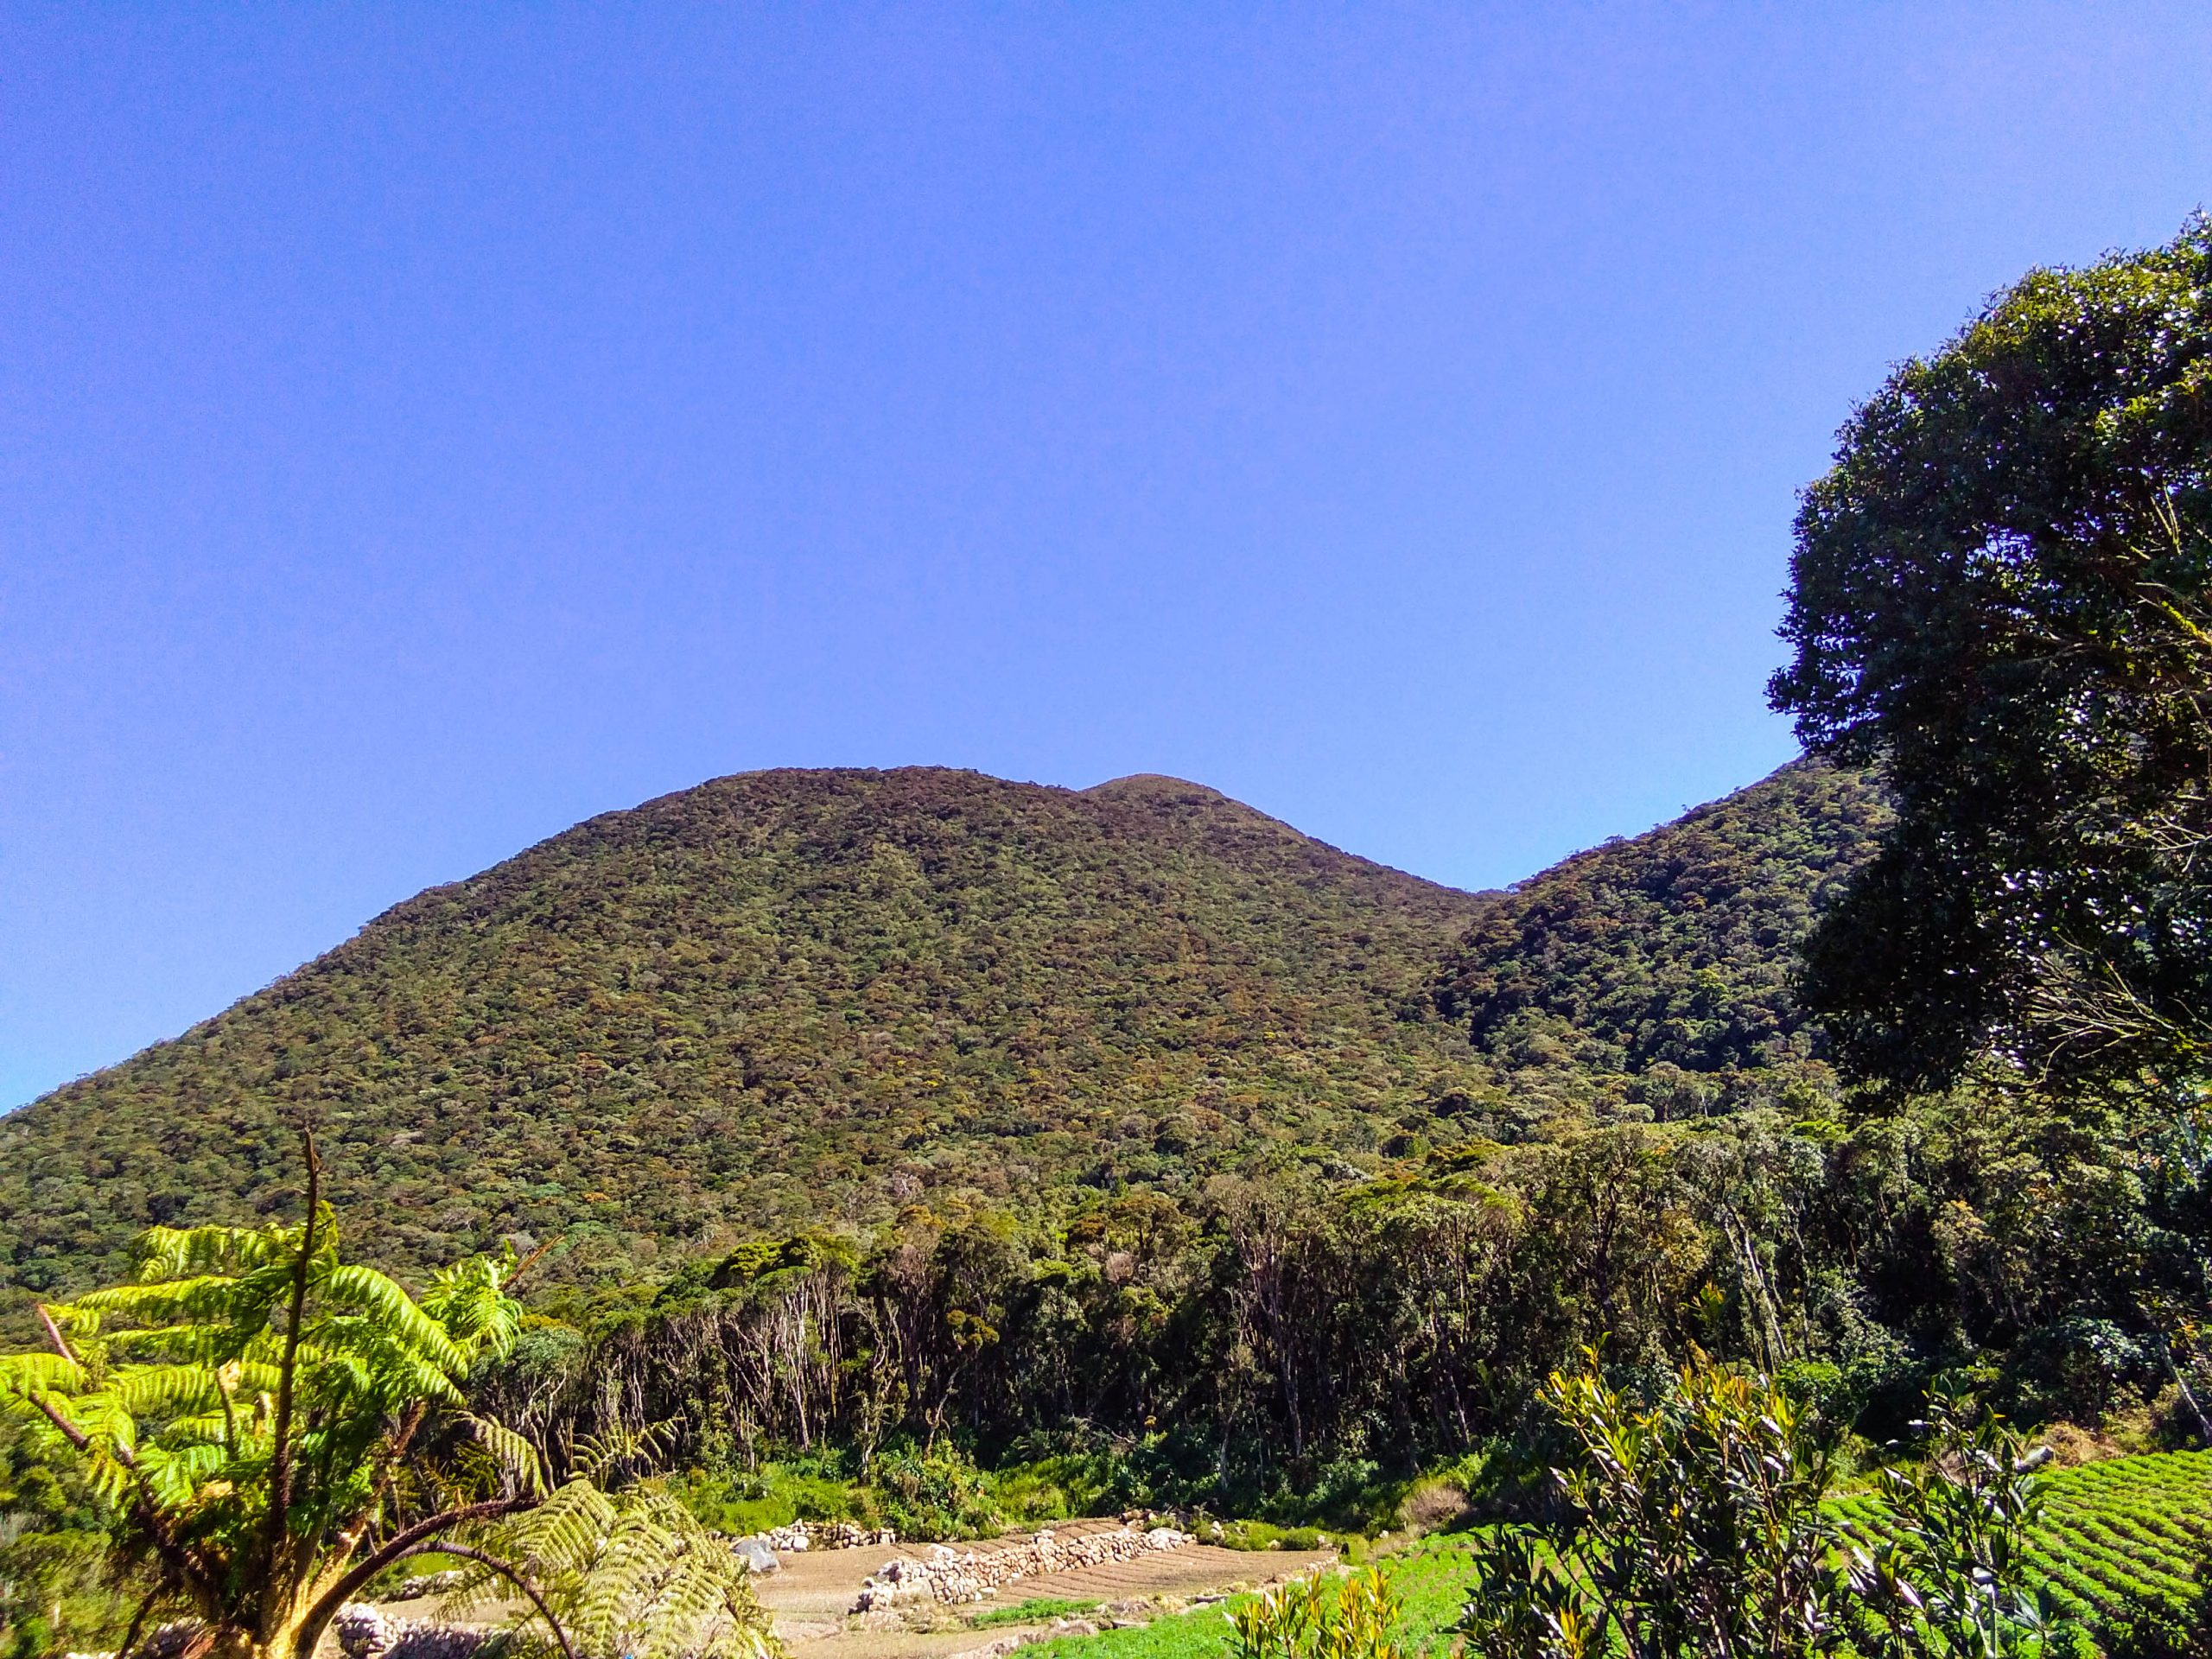 A green, forested mountain (Mount Tabayoc, one of the highest mountains in the Philippines) rises above a densely vegetated plain beneath a clear blue sky